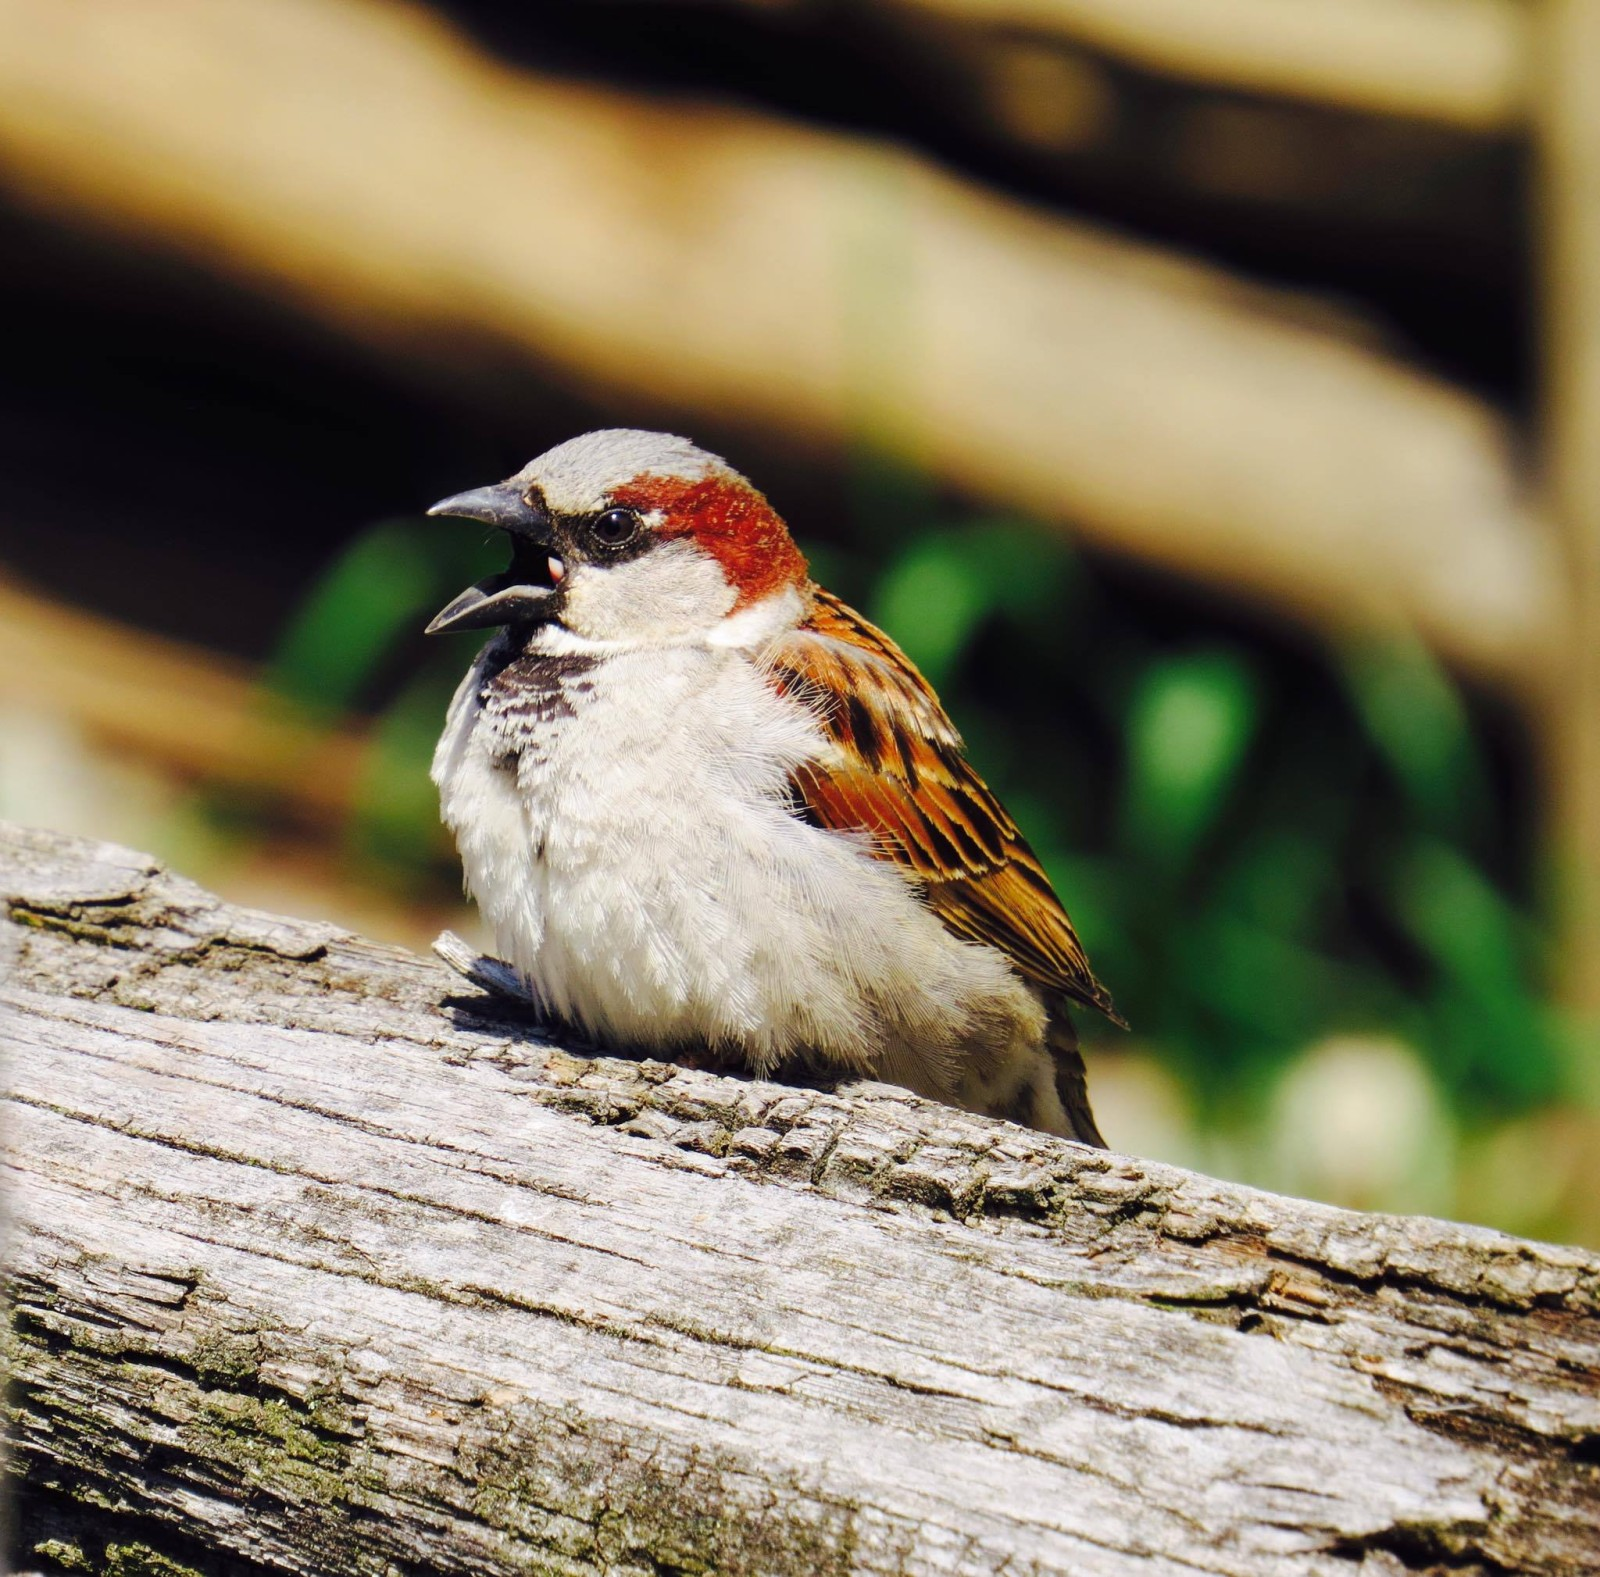 From: Tia Johns-Barcenas House sparrow, taken at Booker T. Washington National Monument. 4-11-16